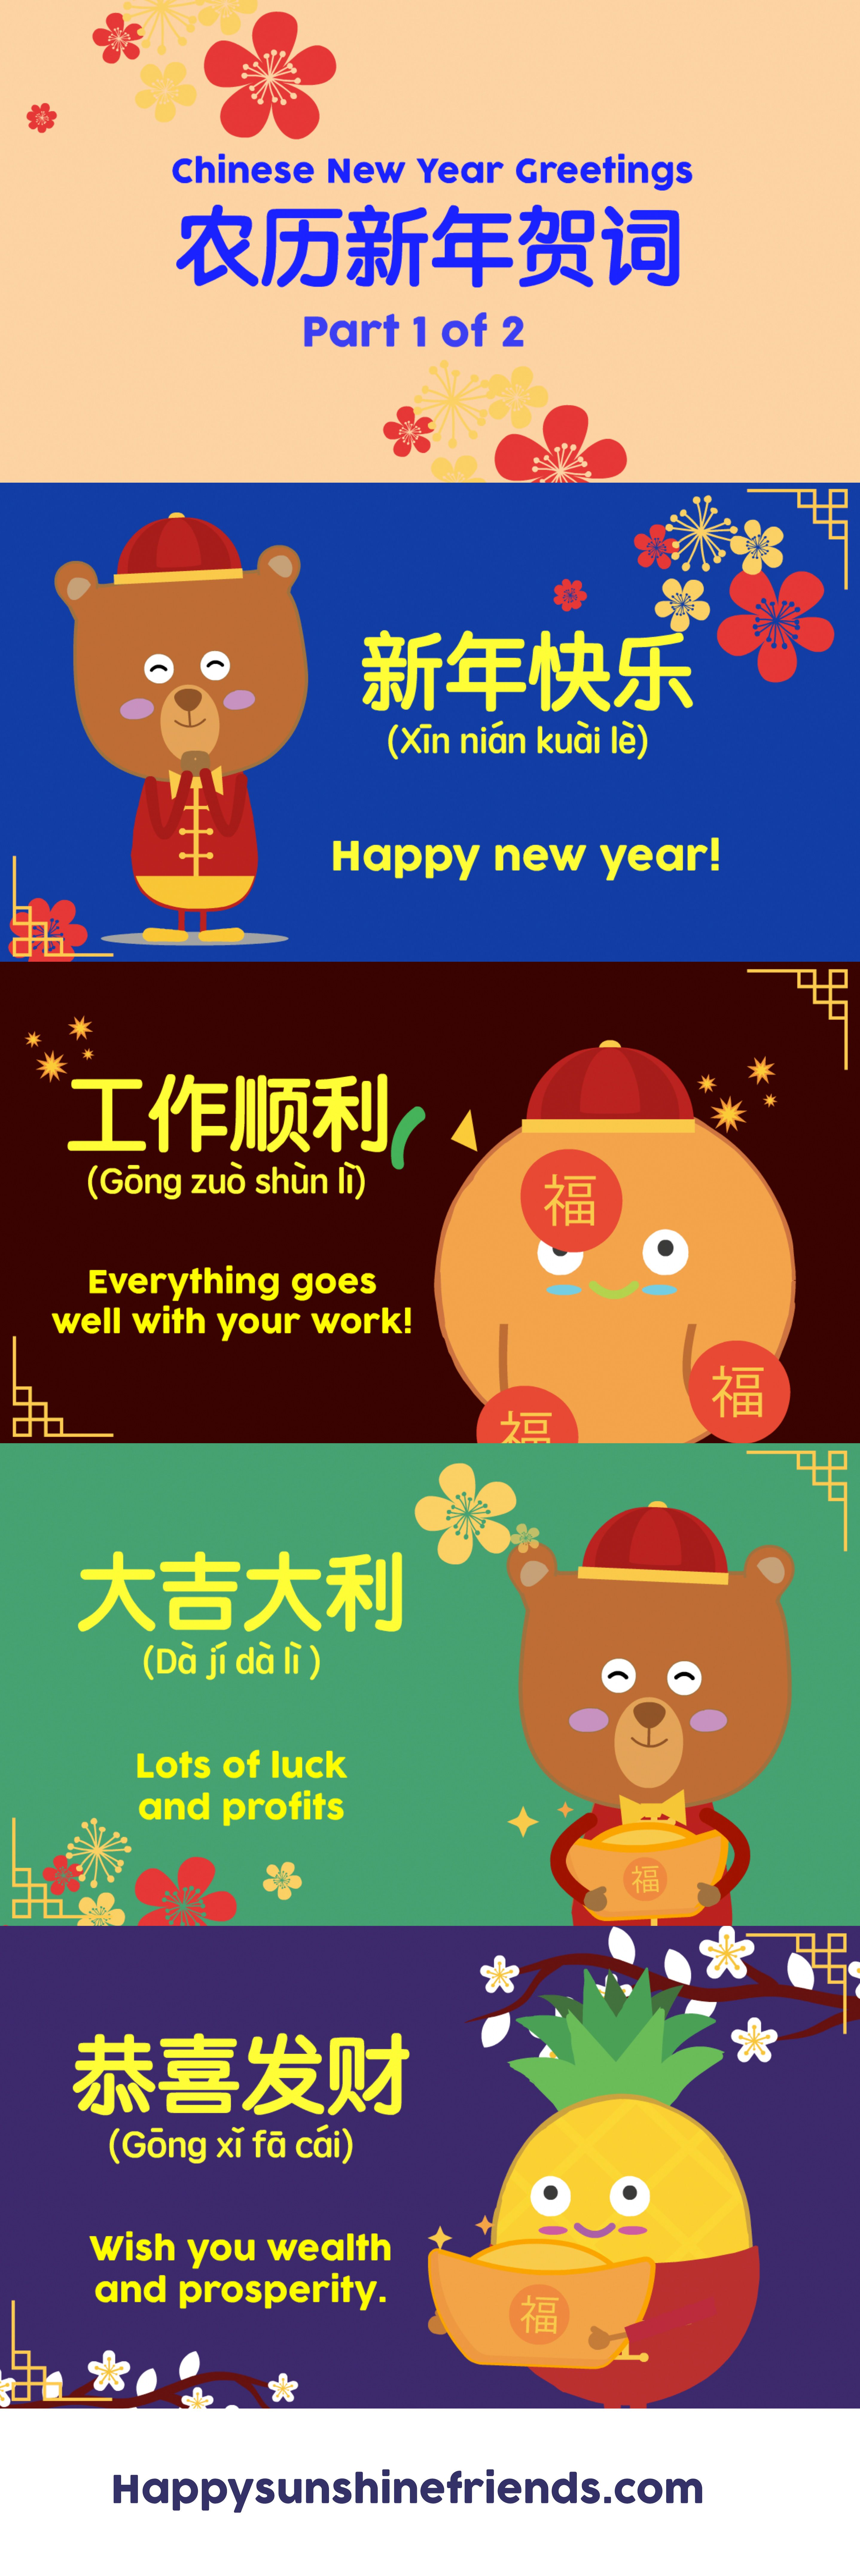 Chinese New Year 2018 Greetings Easy And Simple Kids